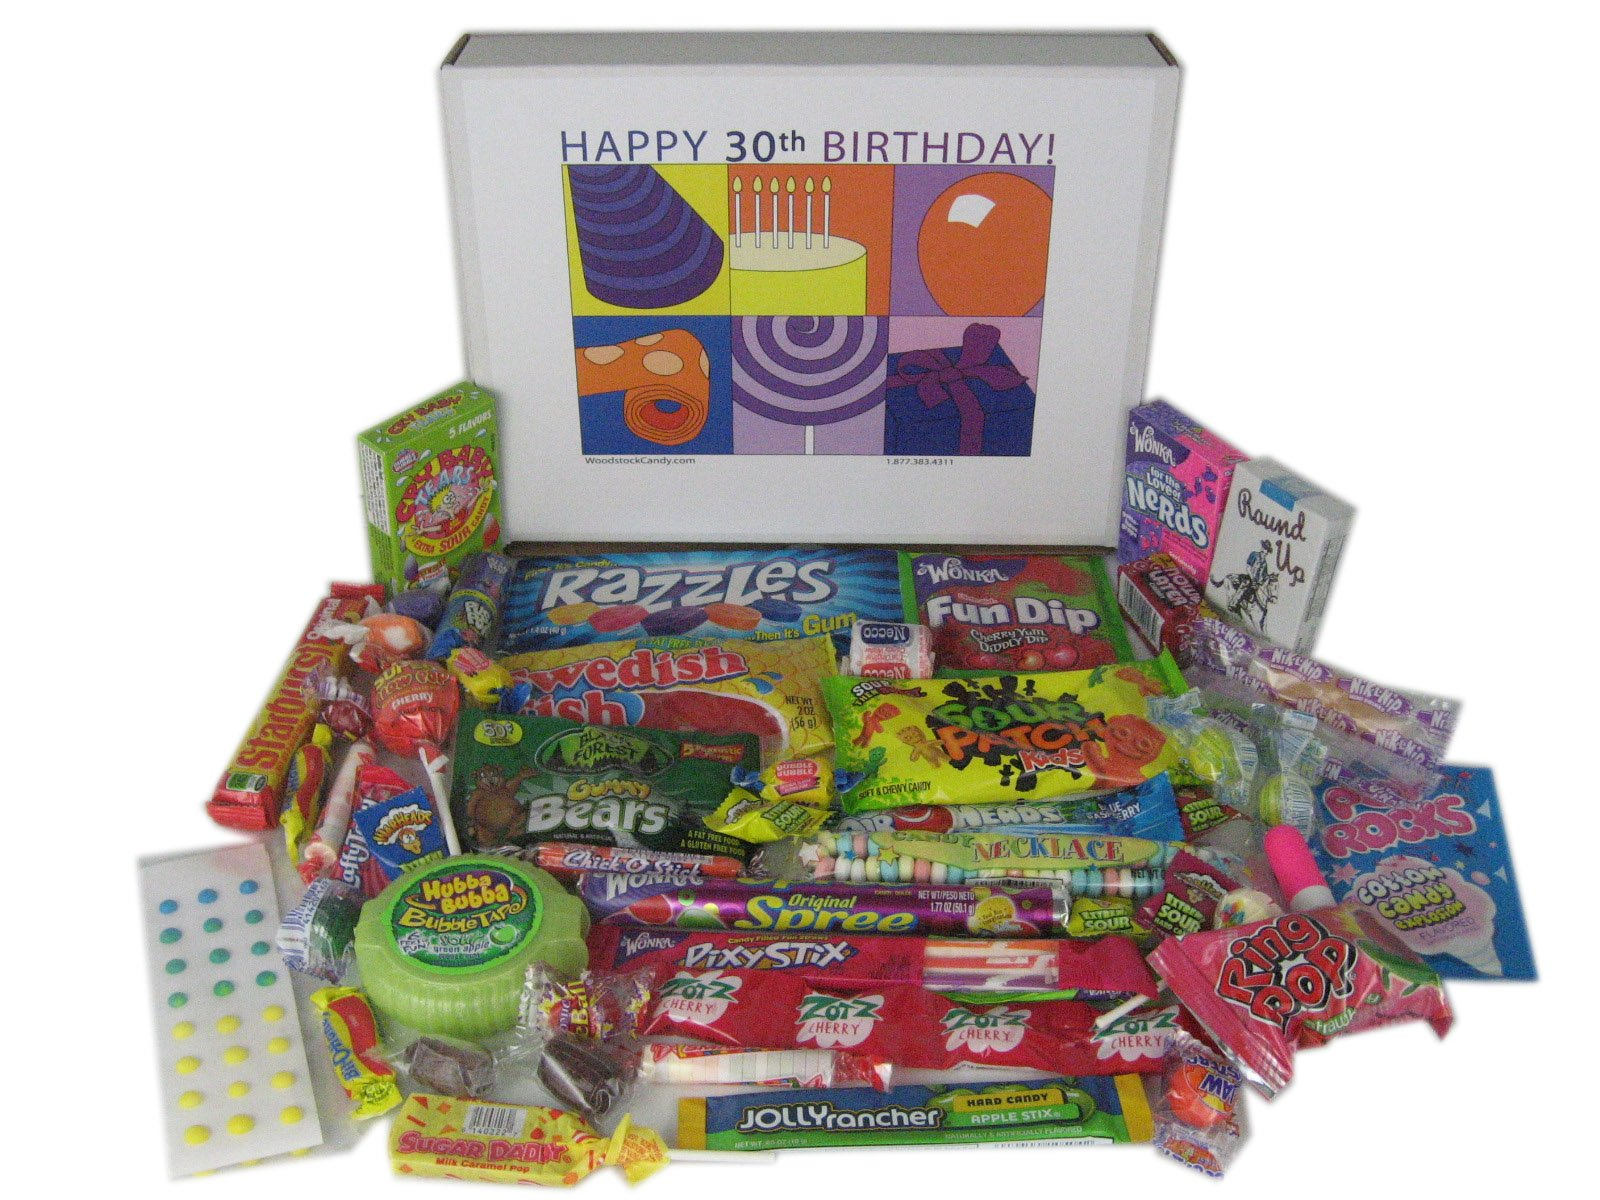 Woodstock Candy 30th Birthday Party Gift Box of Retro Nostalgic Candy for Men and Women